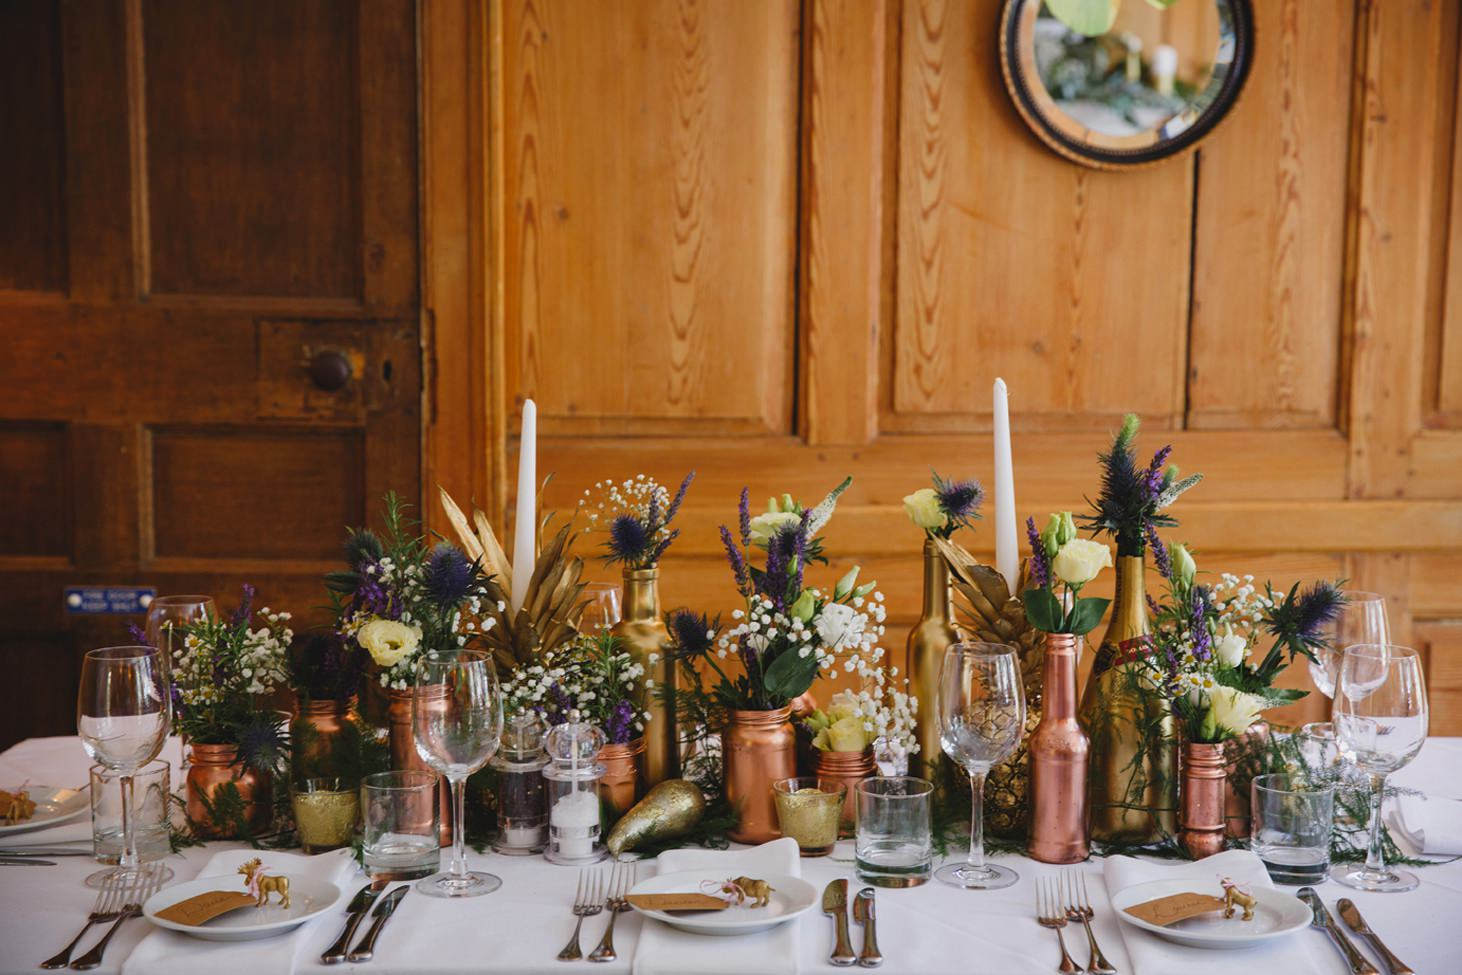 The Rectory Hotel Crudwell handmade table decorations